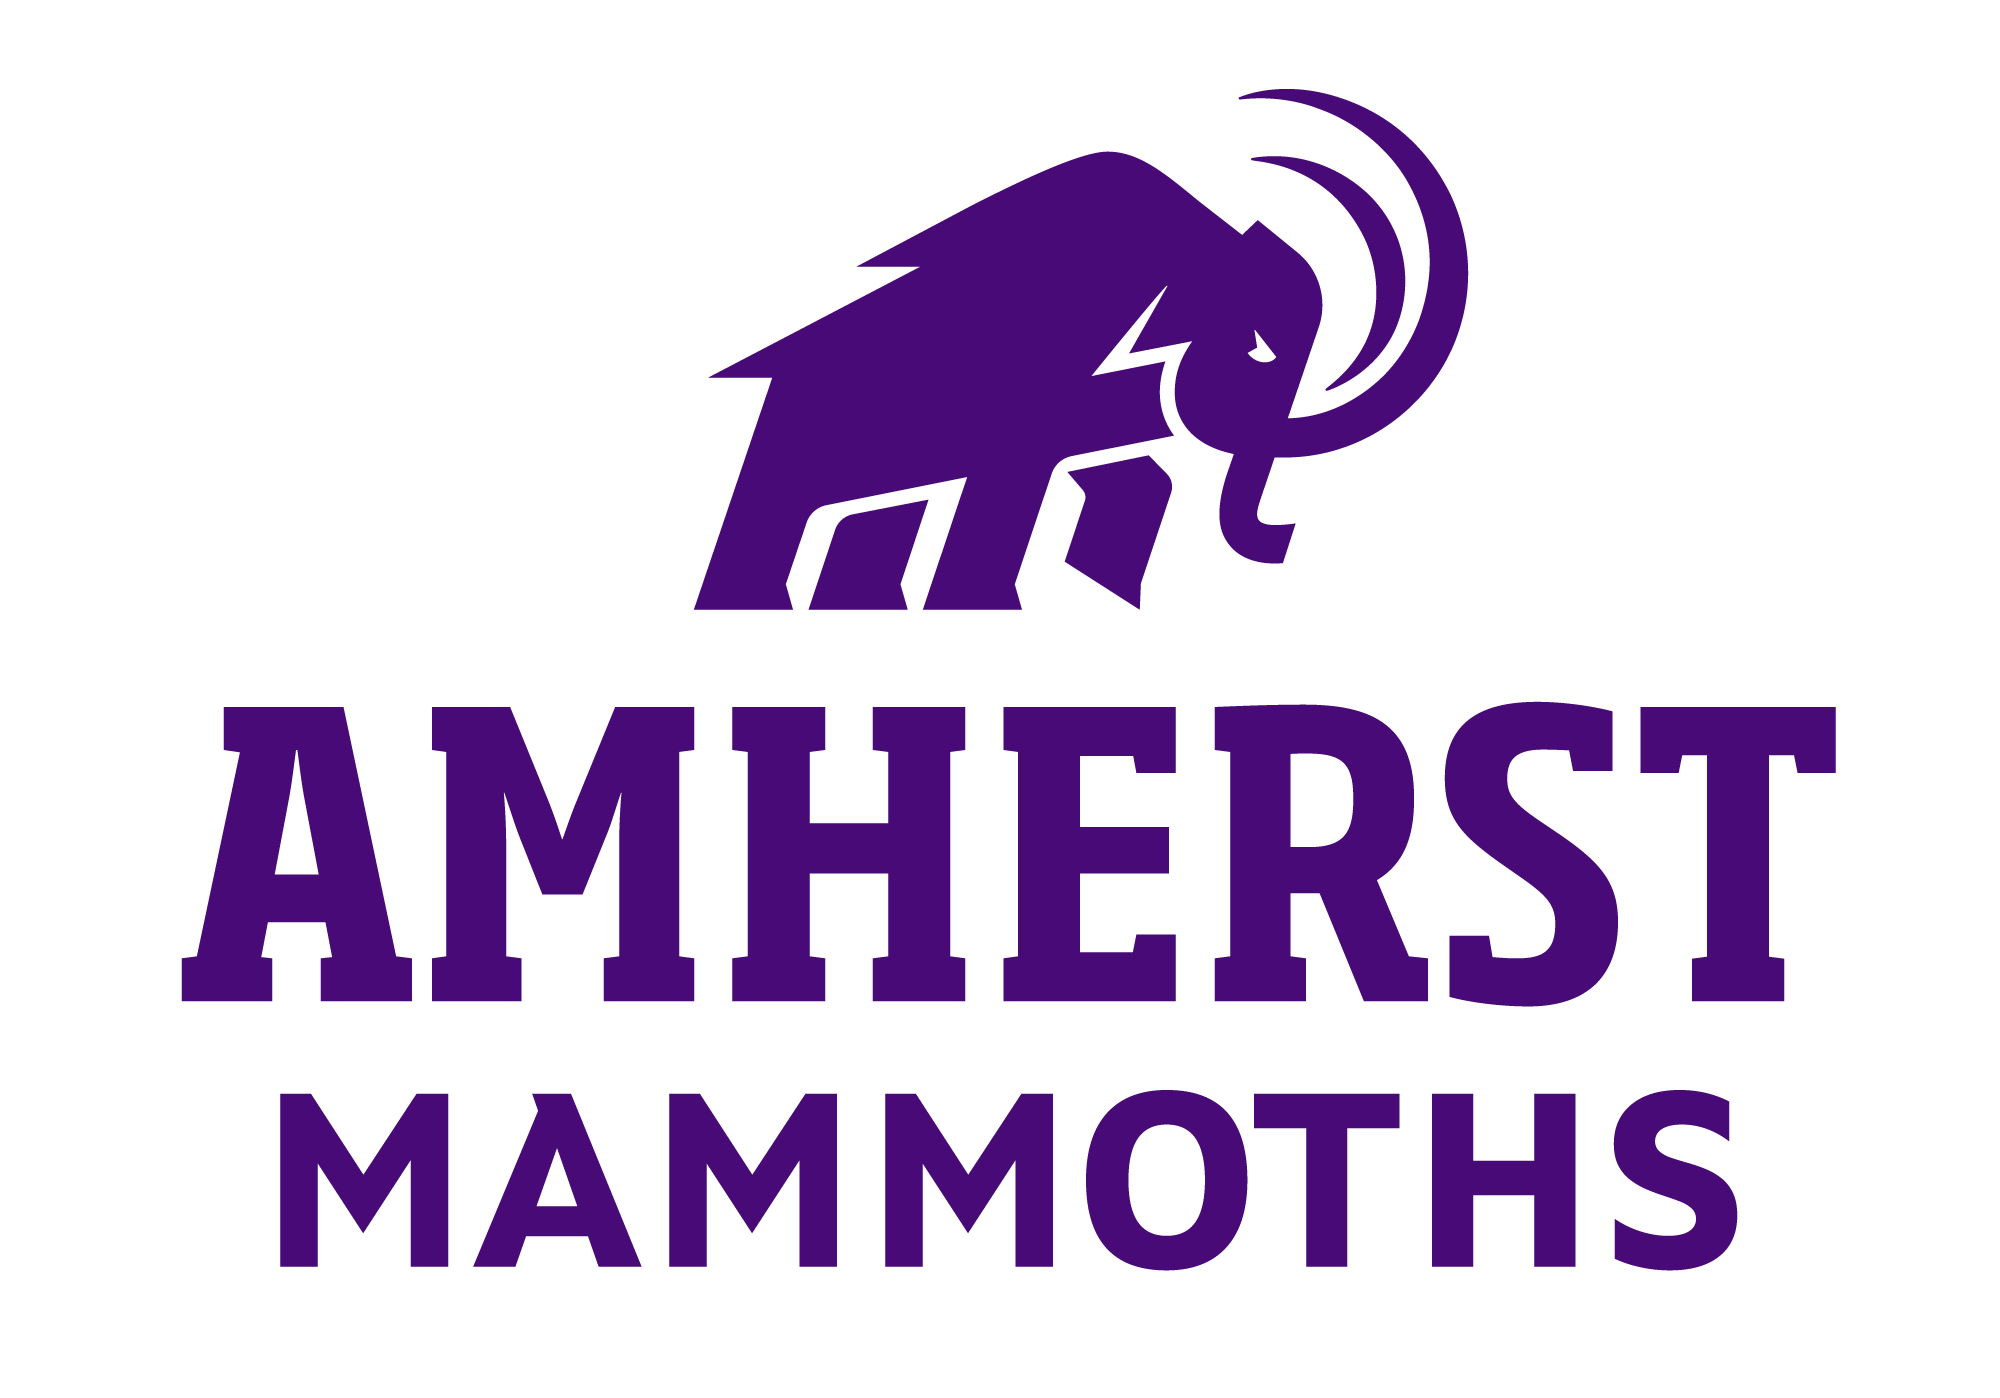 Mammoth logo with caption Amherst Mammoths